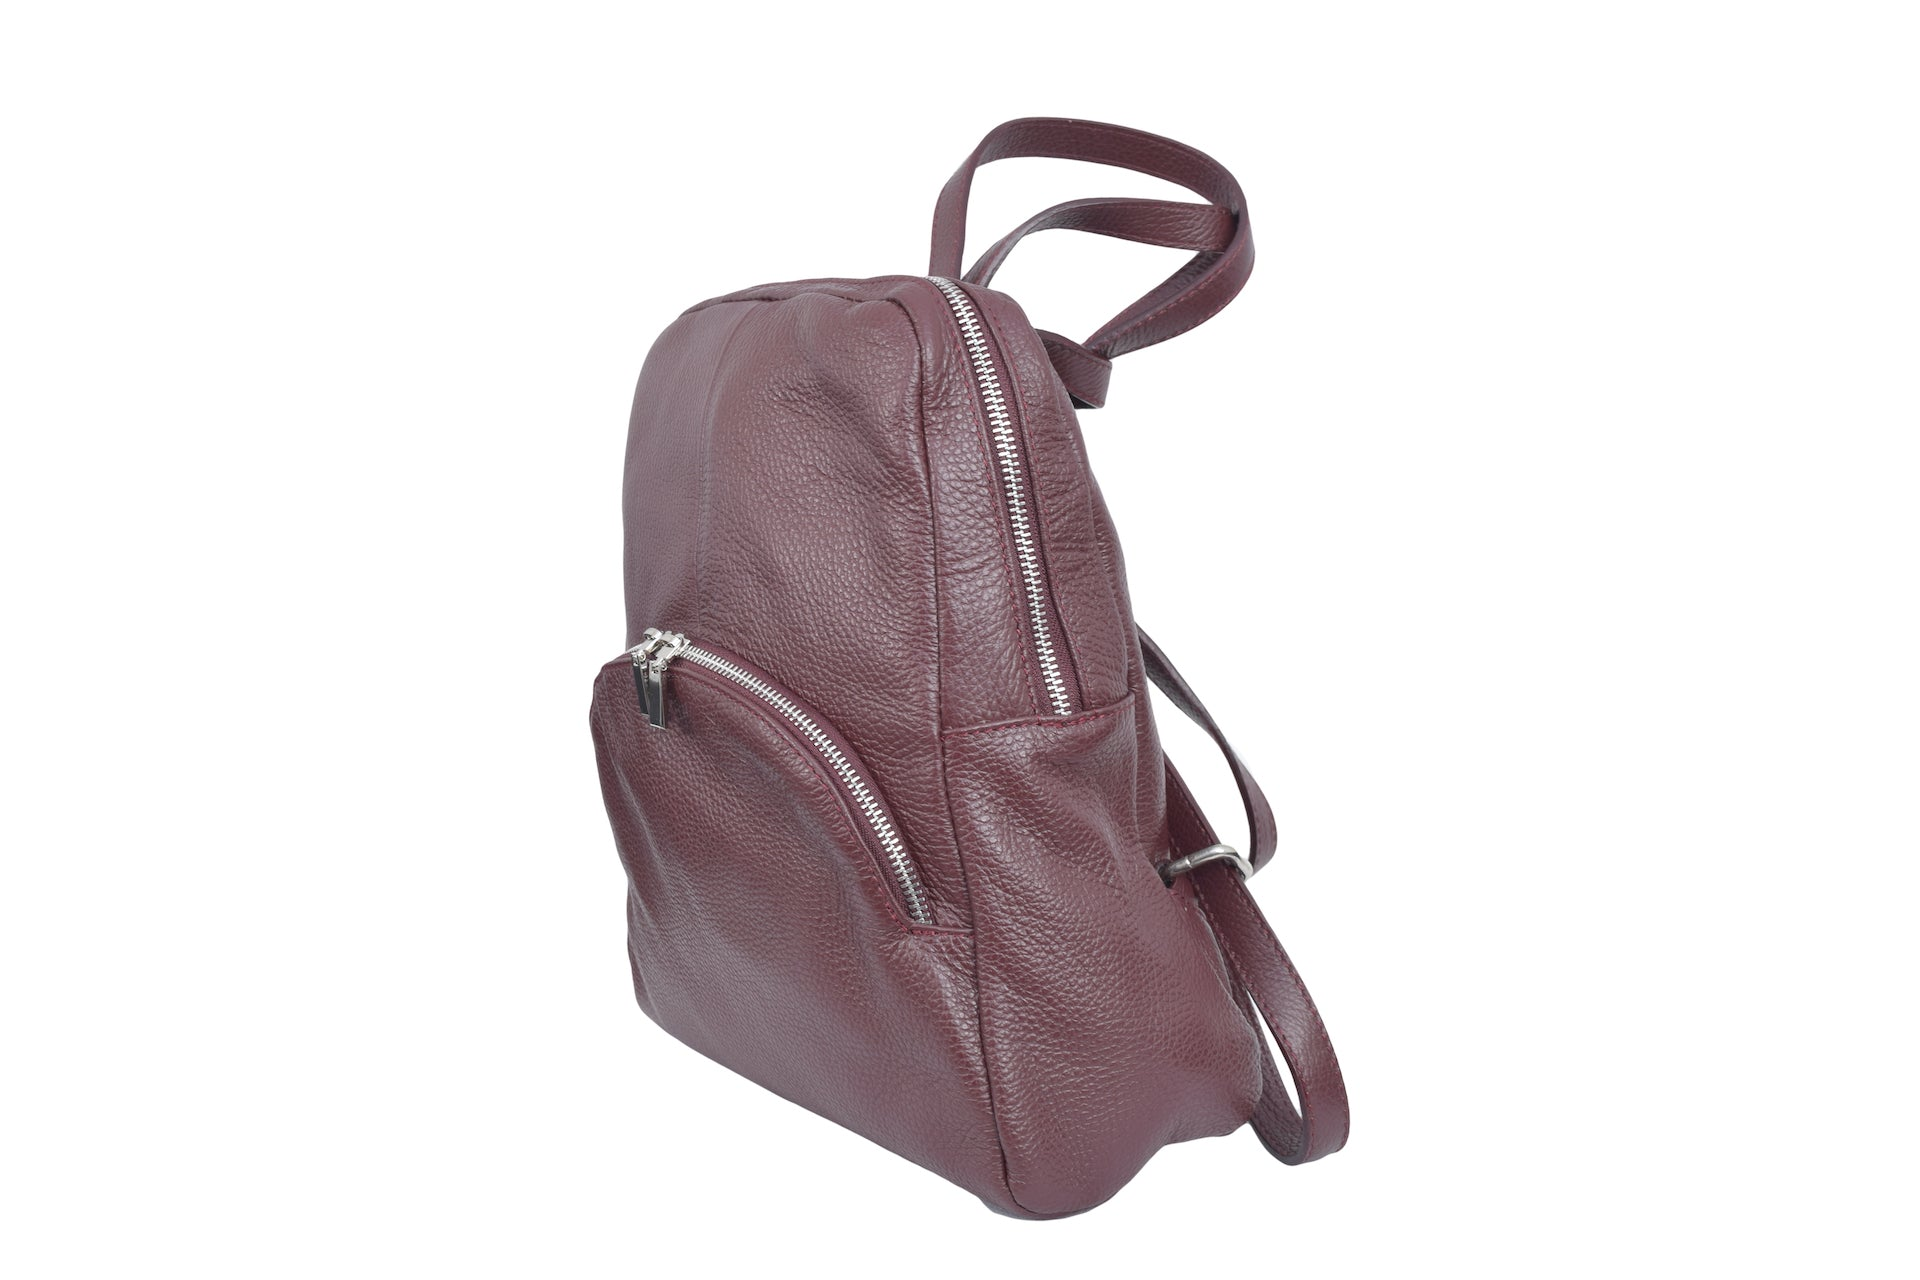 Burgundy leather backpack with three external compartments and silver hardware